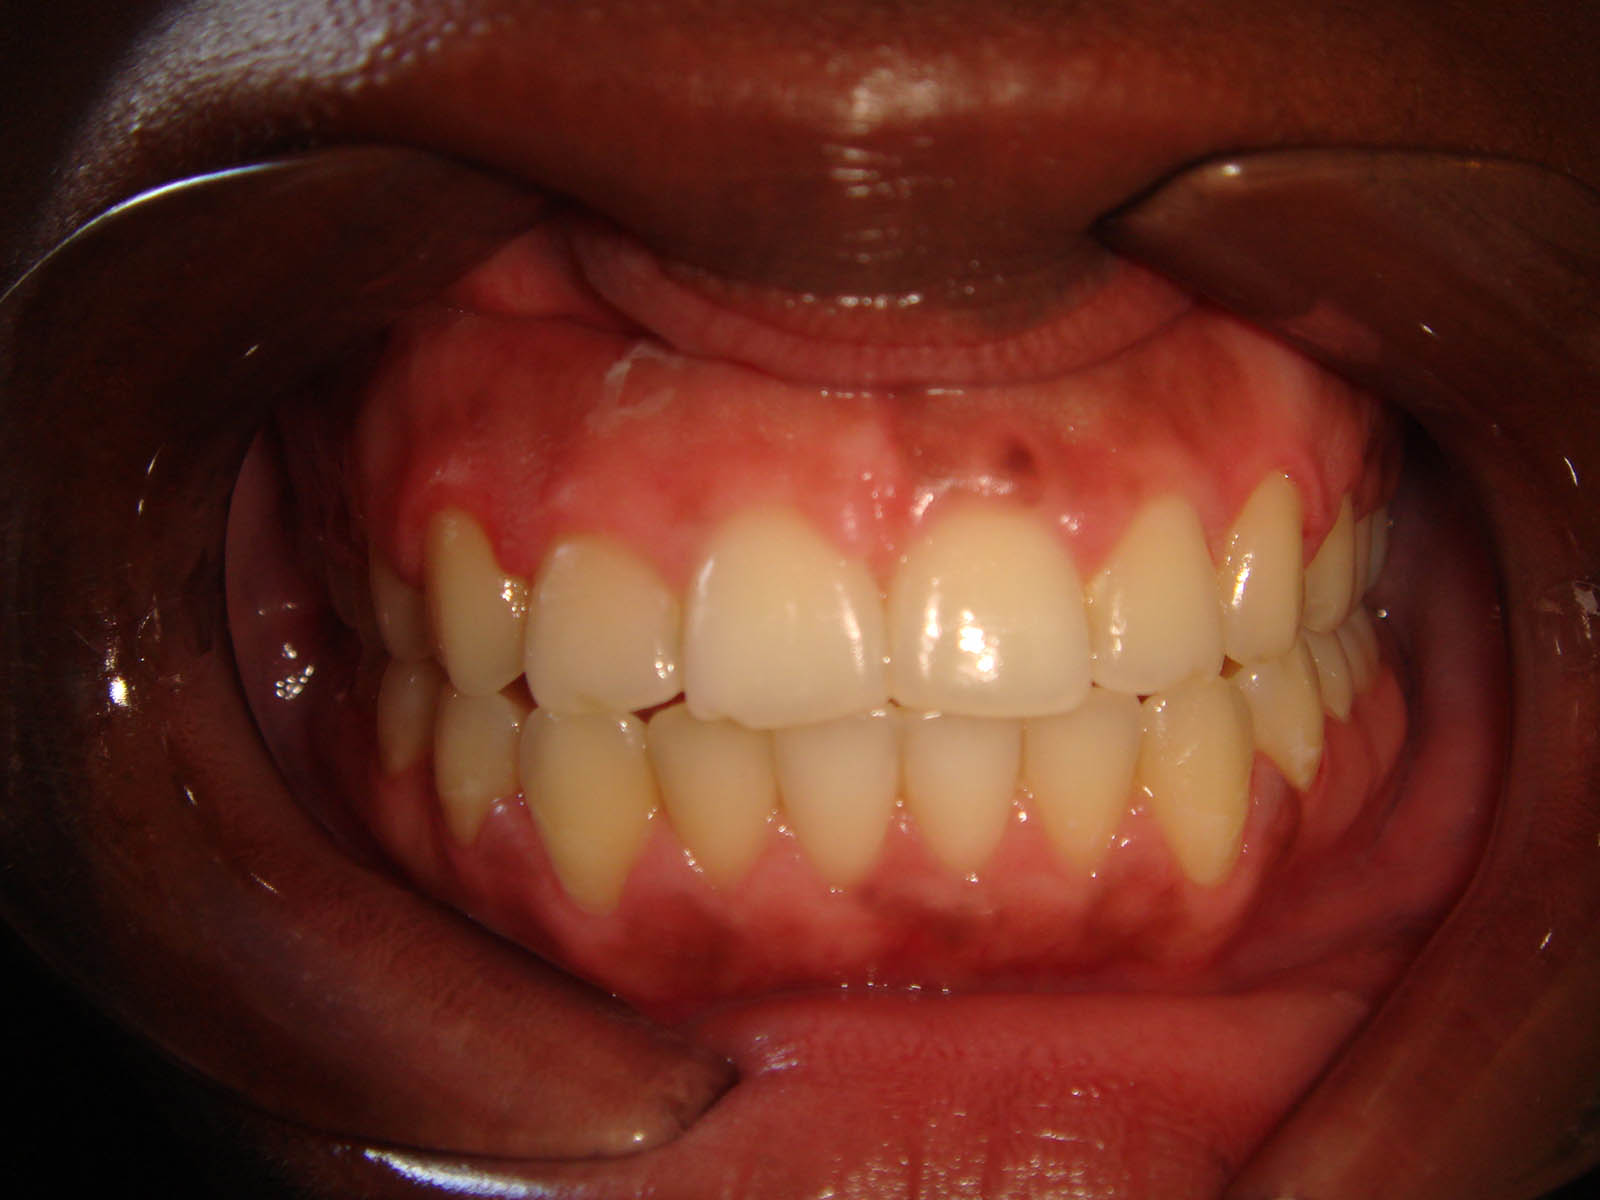 Treated With Fixed Braces For 16 Months - After